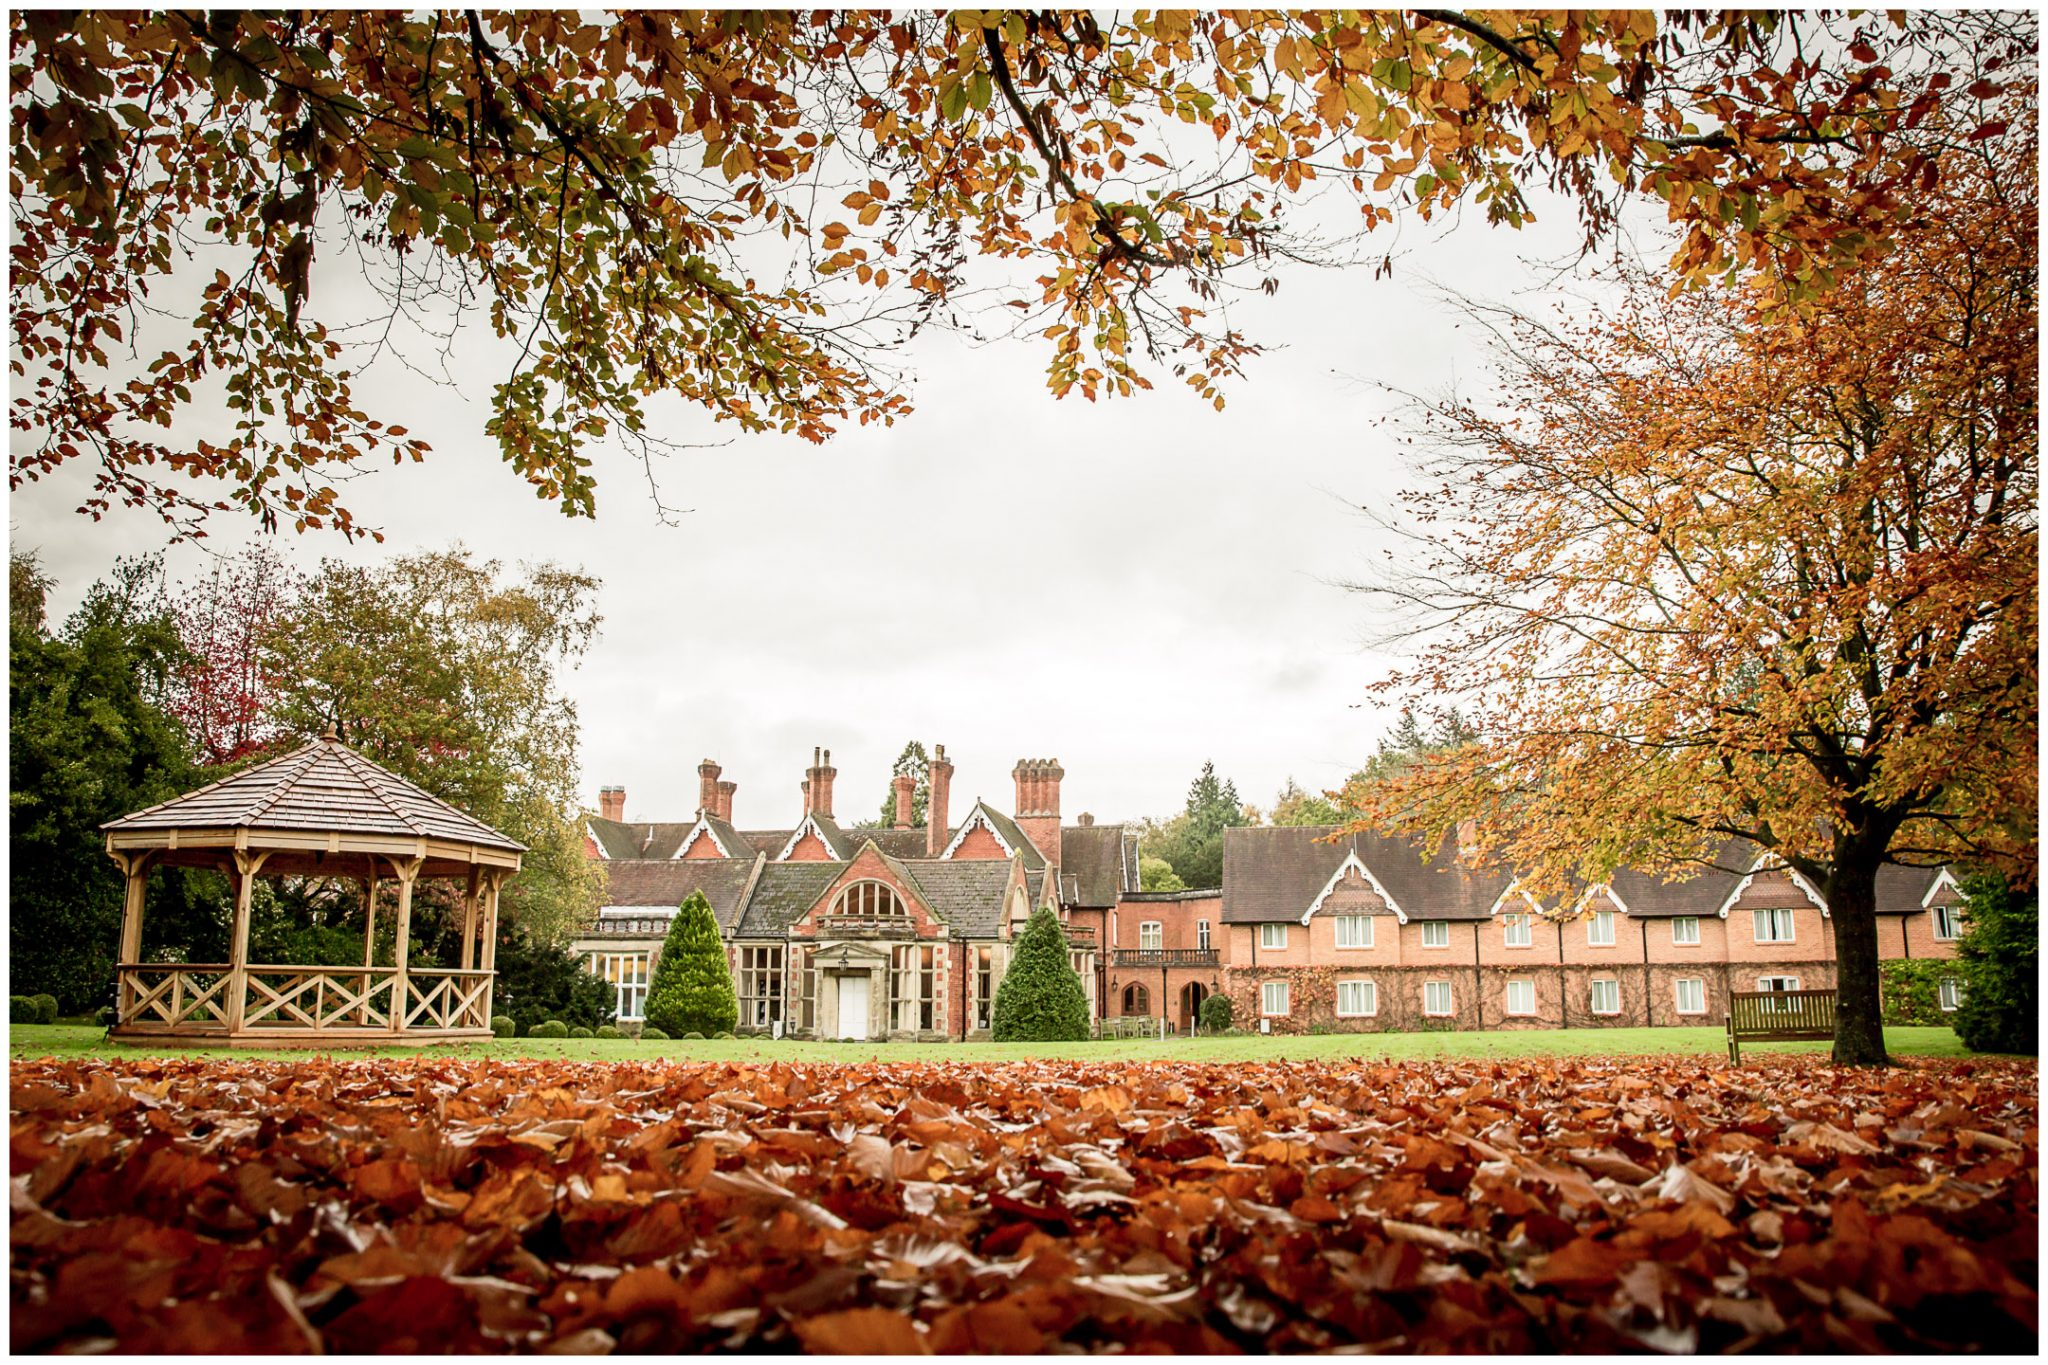 Audleys Wood wedding photograhy venue exterior with autumn colours in the trees